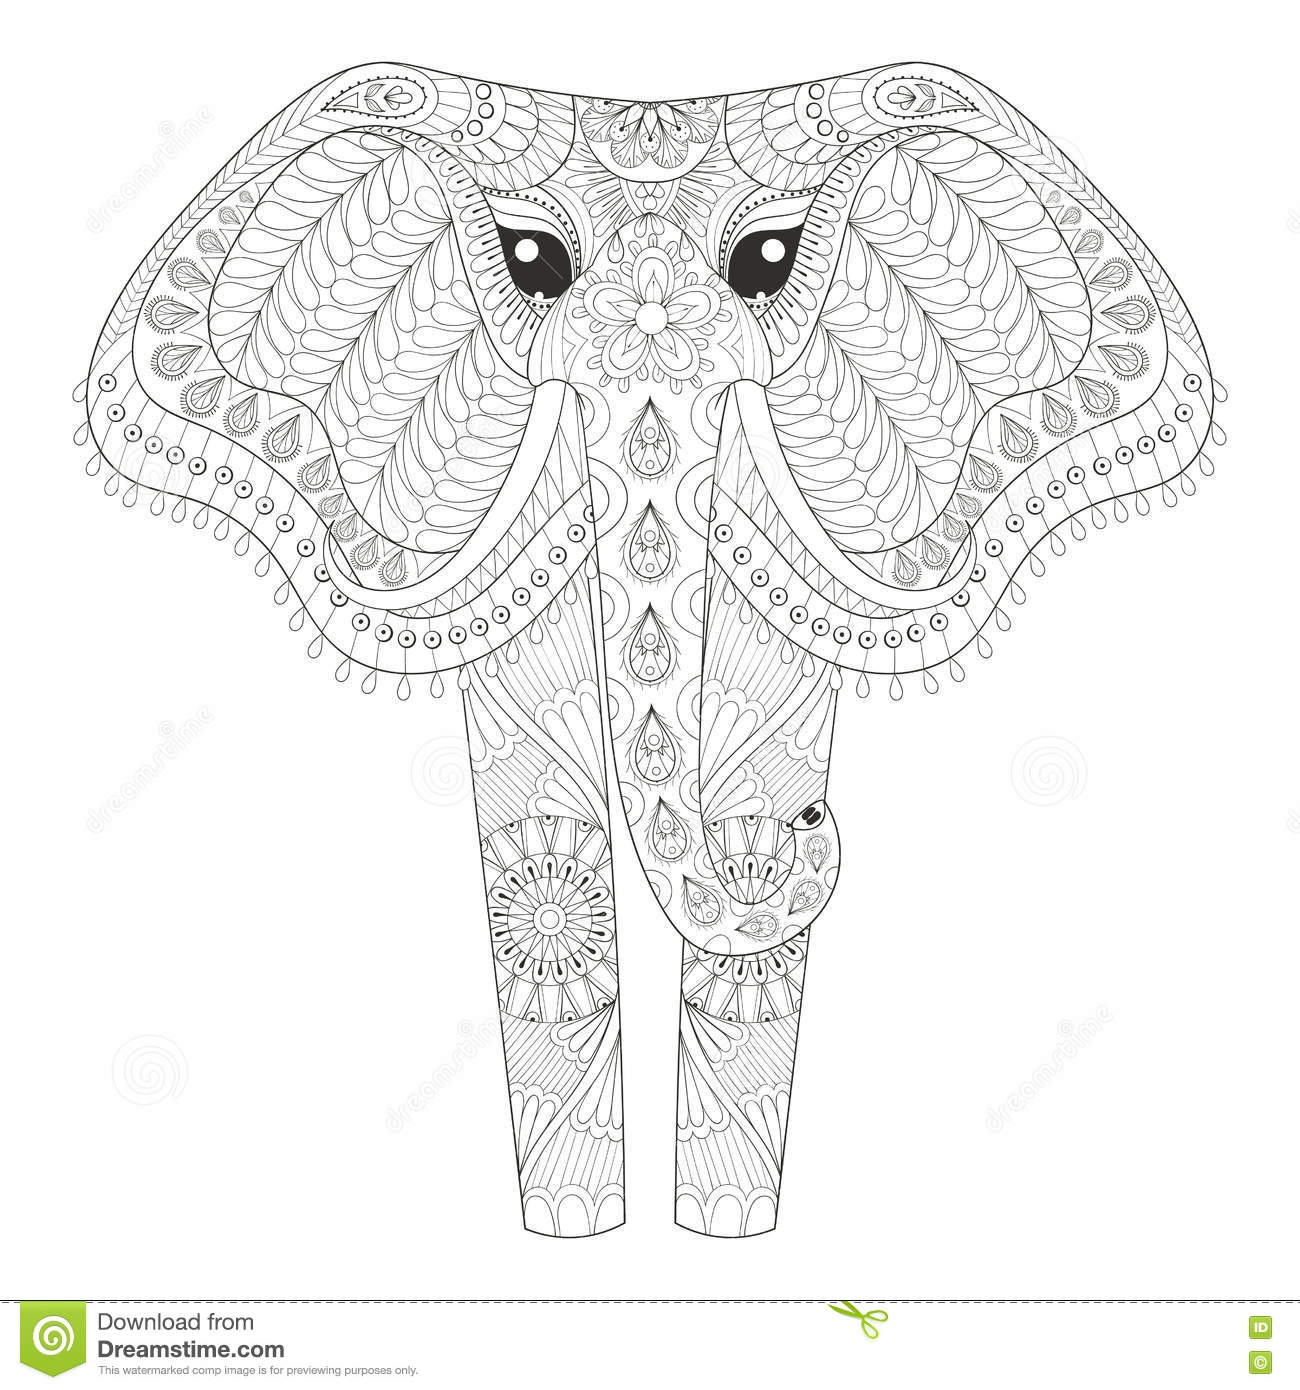 Zentangle Ornamental Elephant For Adult Coloring Pages Hand Dra